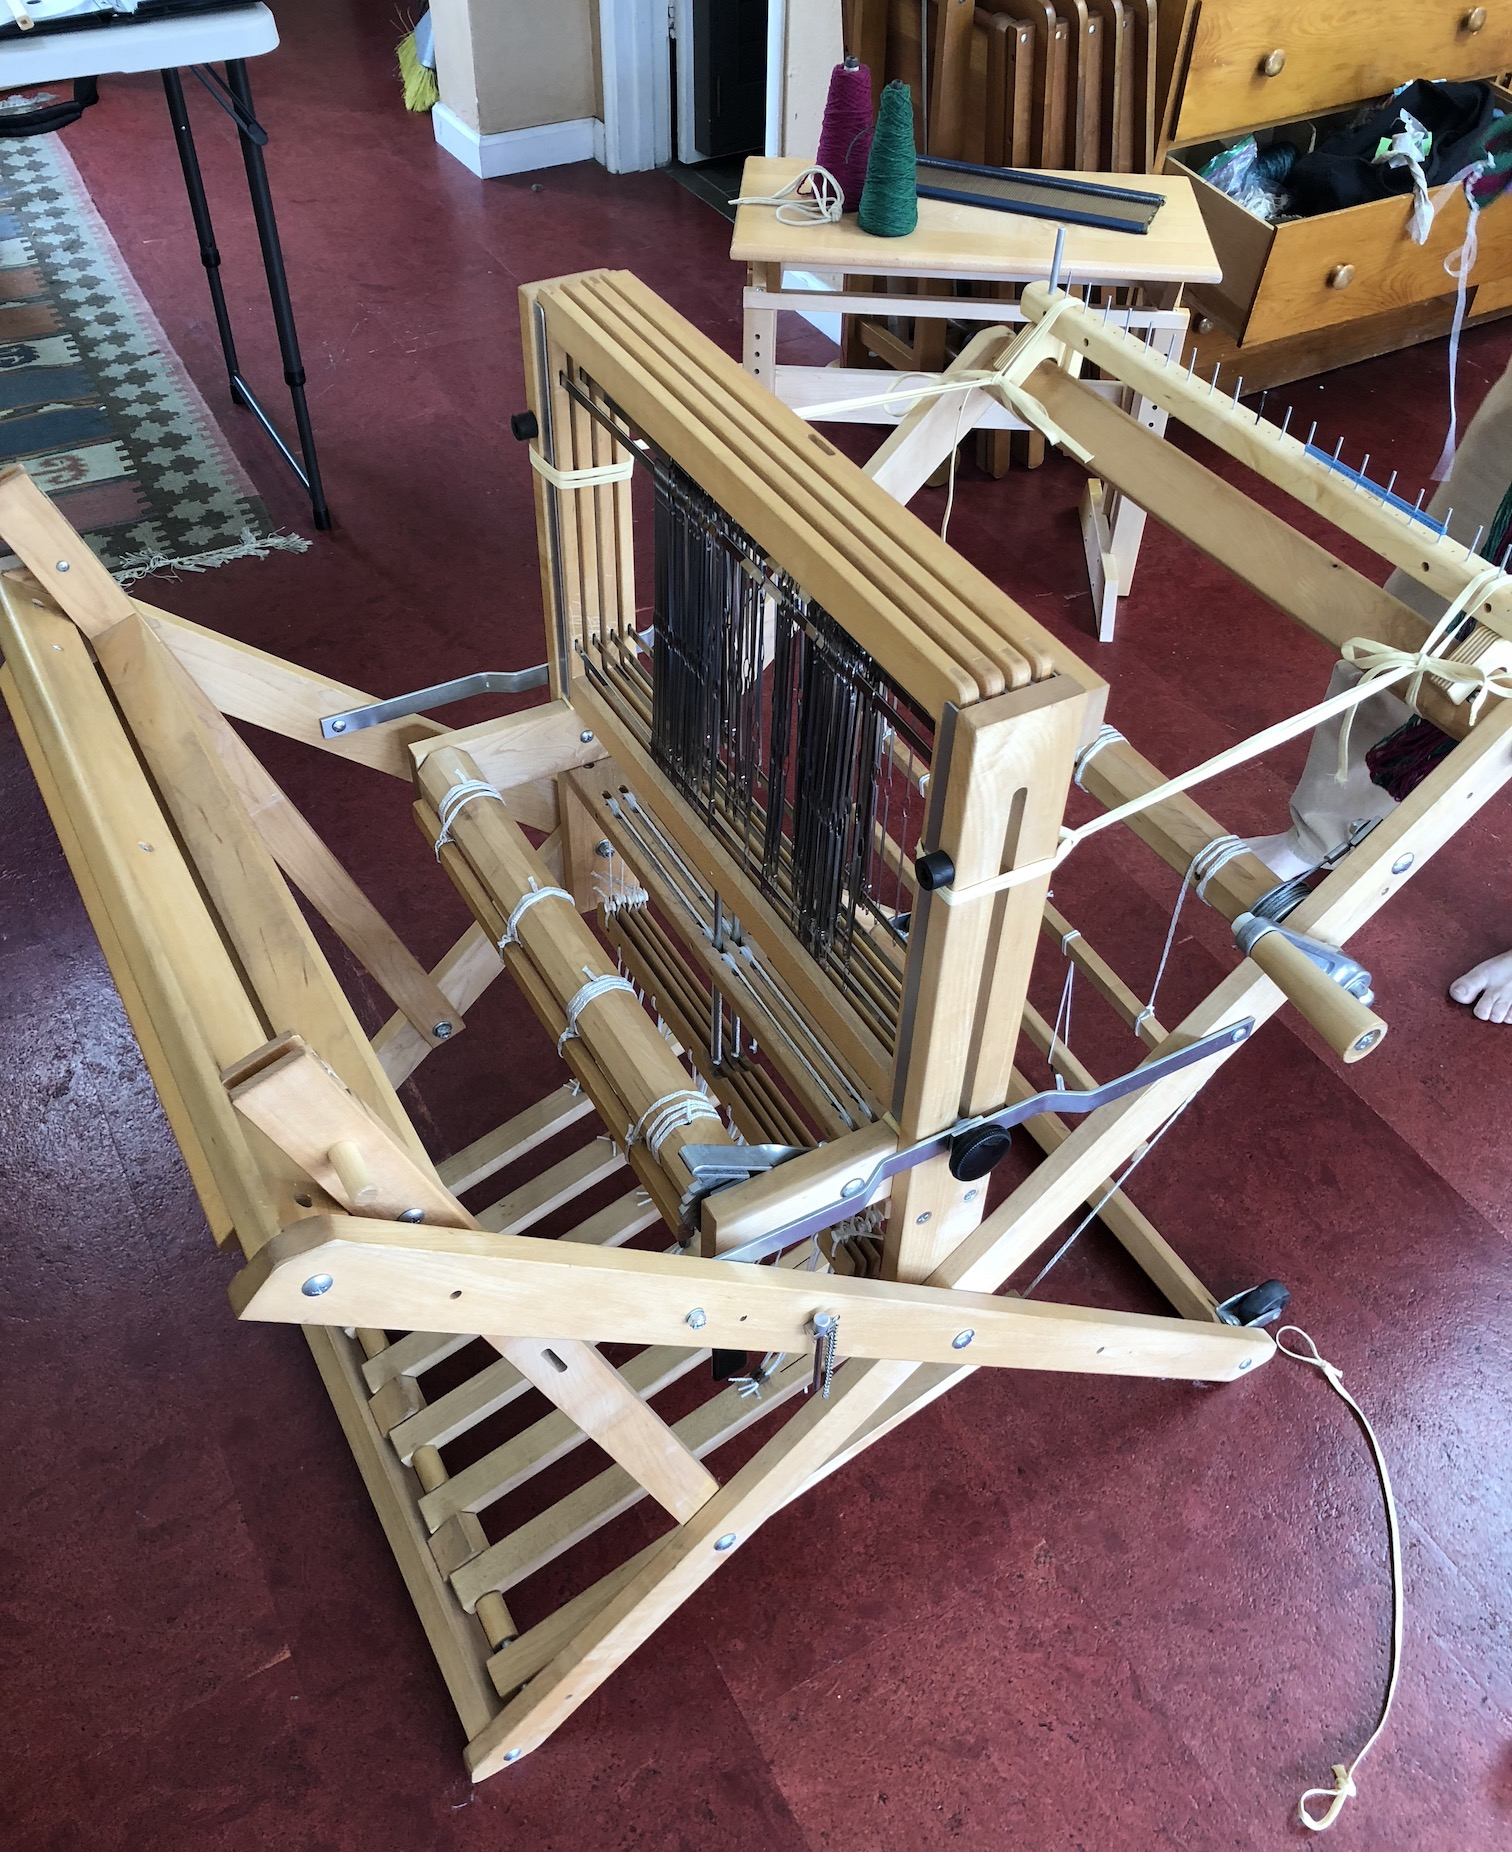 The handloom I used. Note the four heddle frames